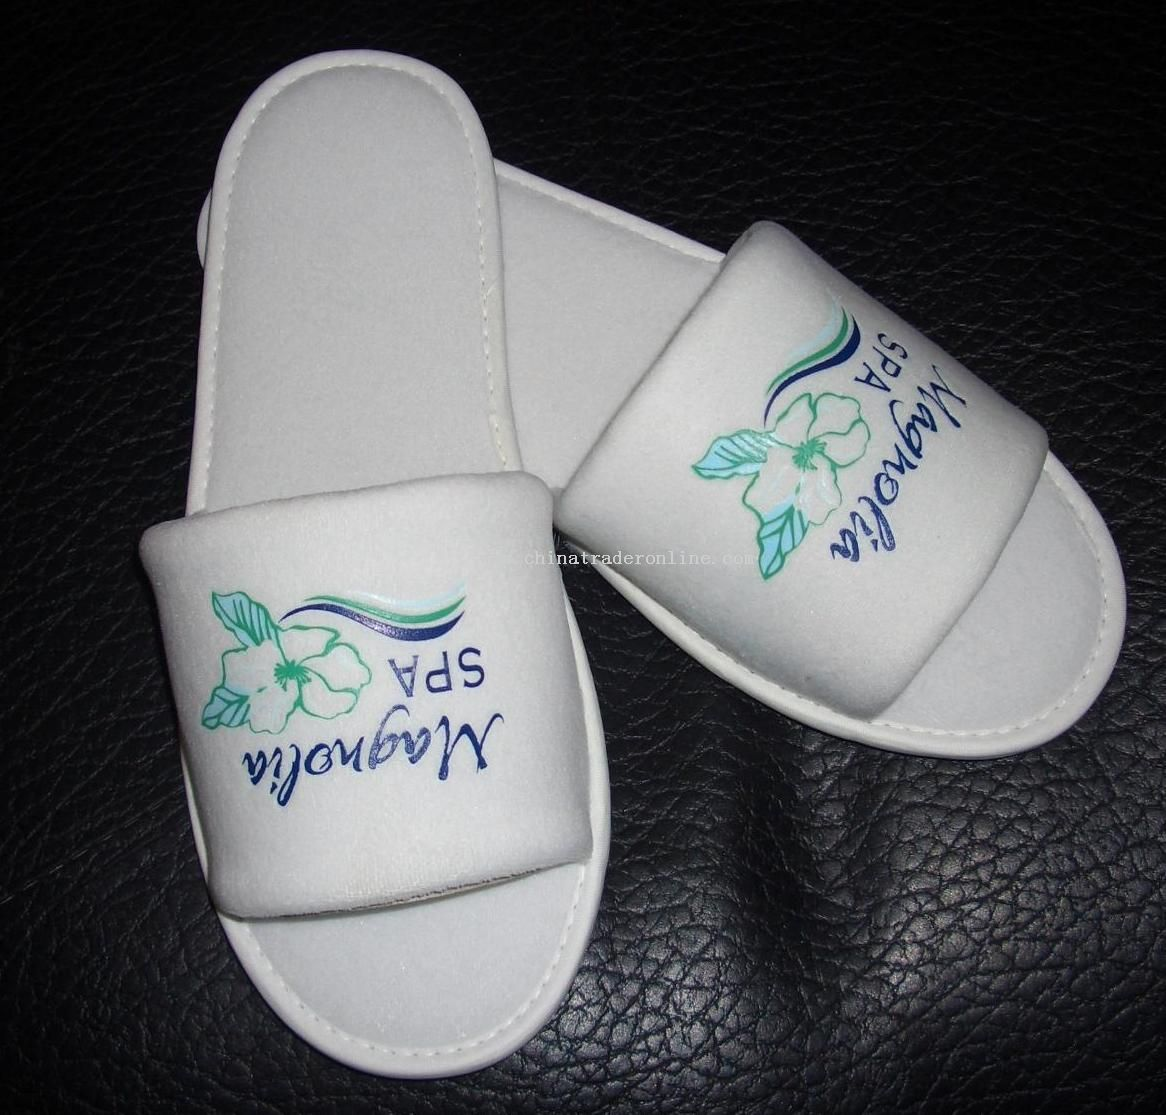 hotel slippers from China